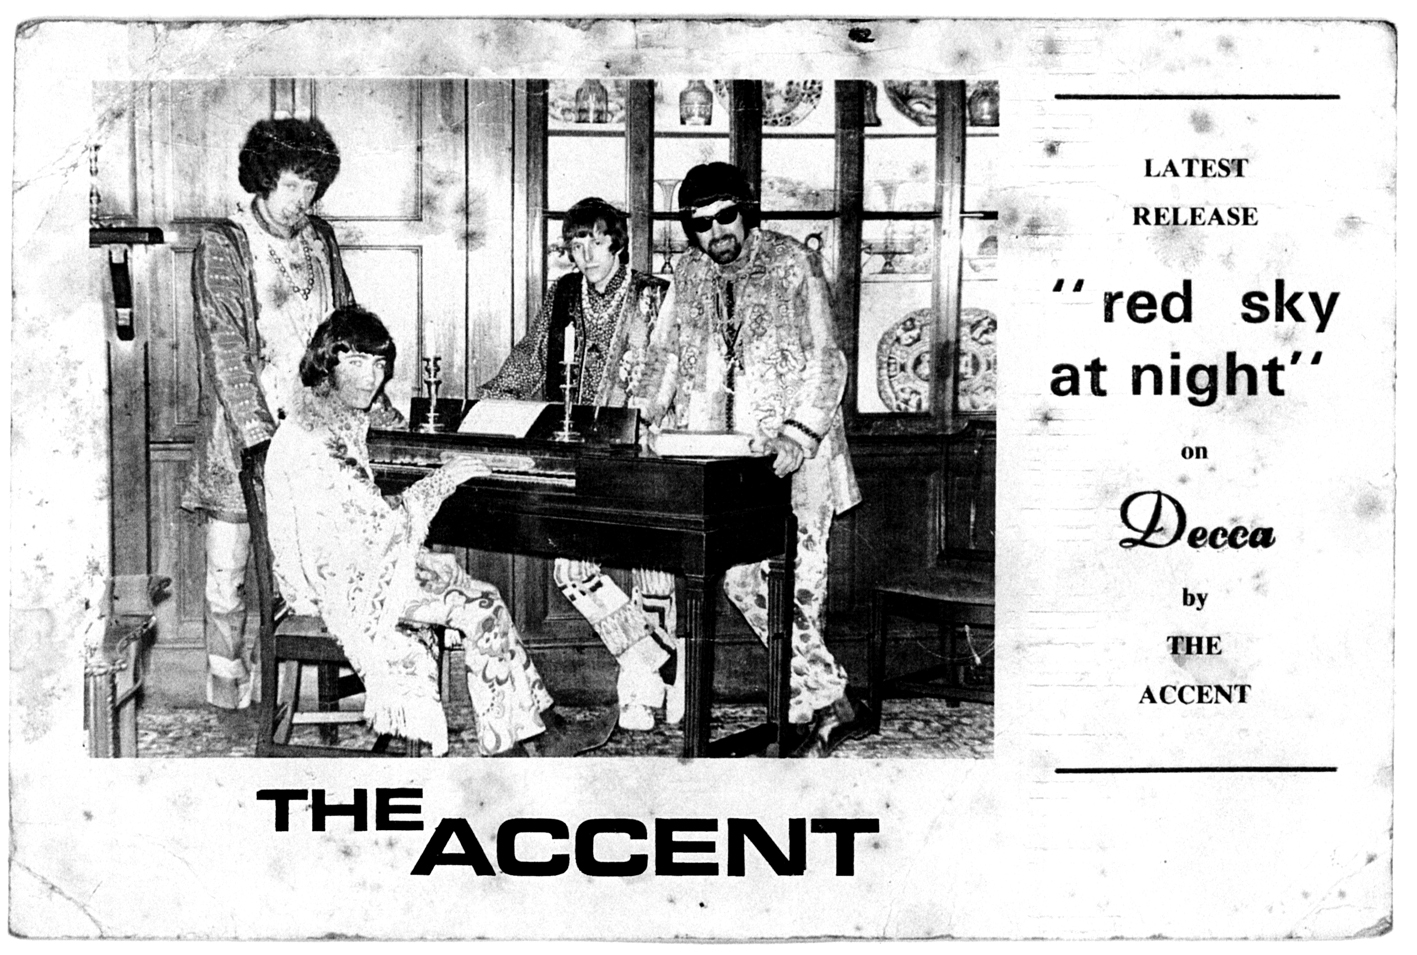 The Accent promo